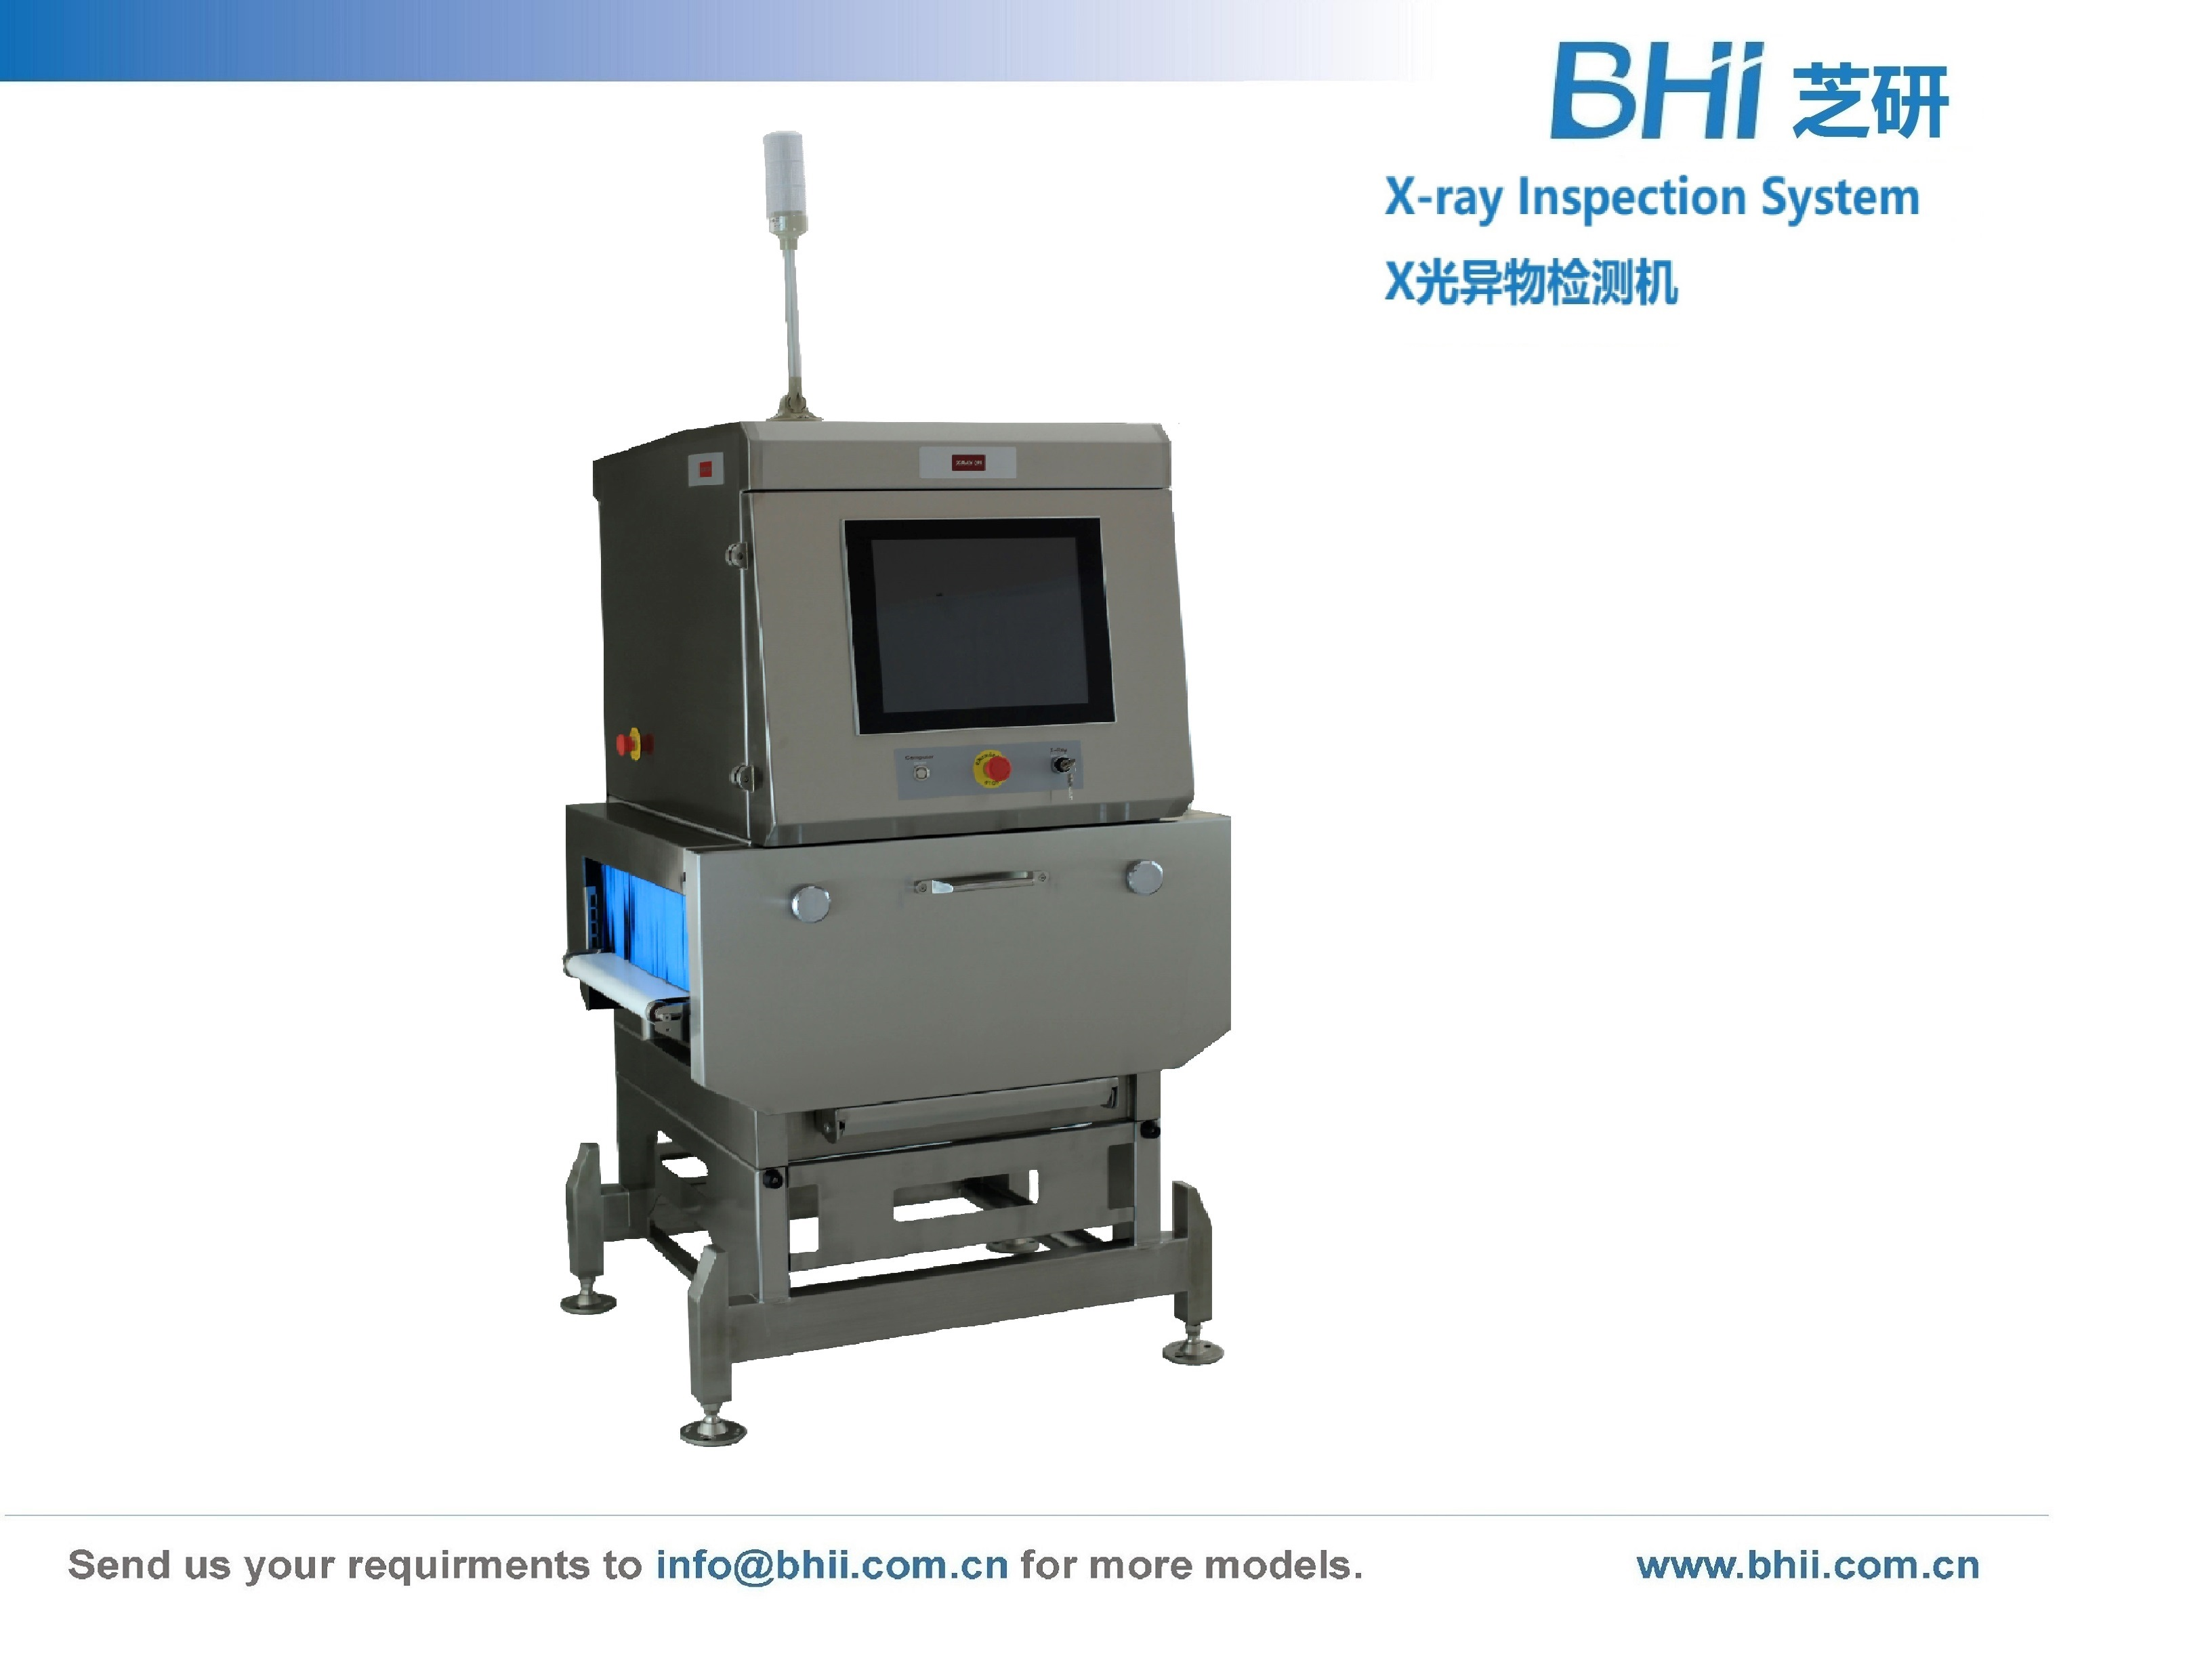 X-ray Inspection System for package